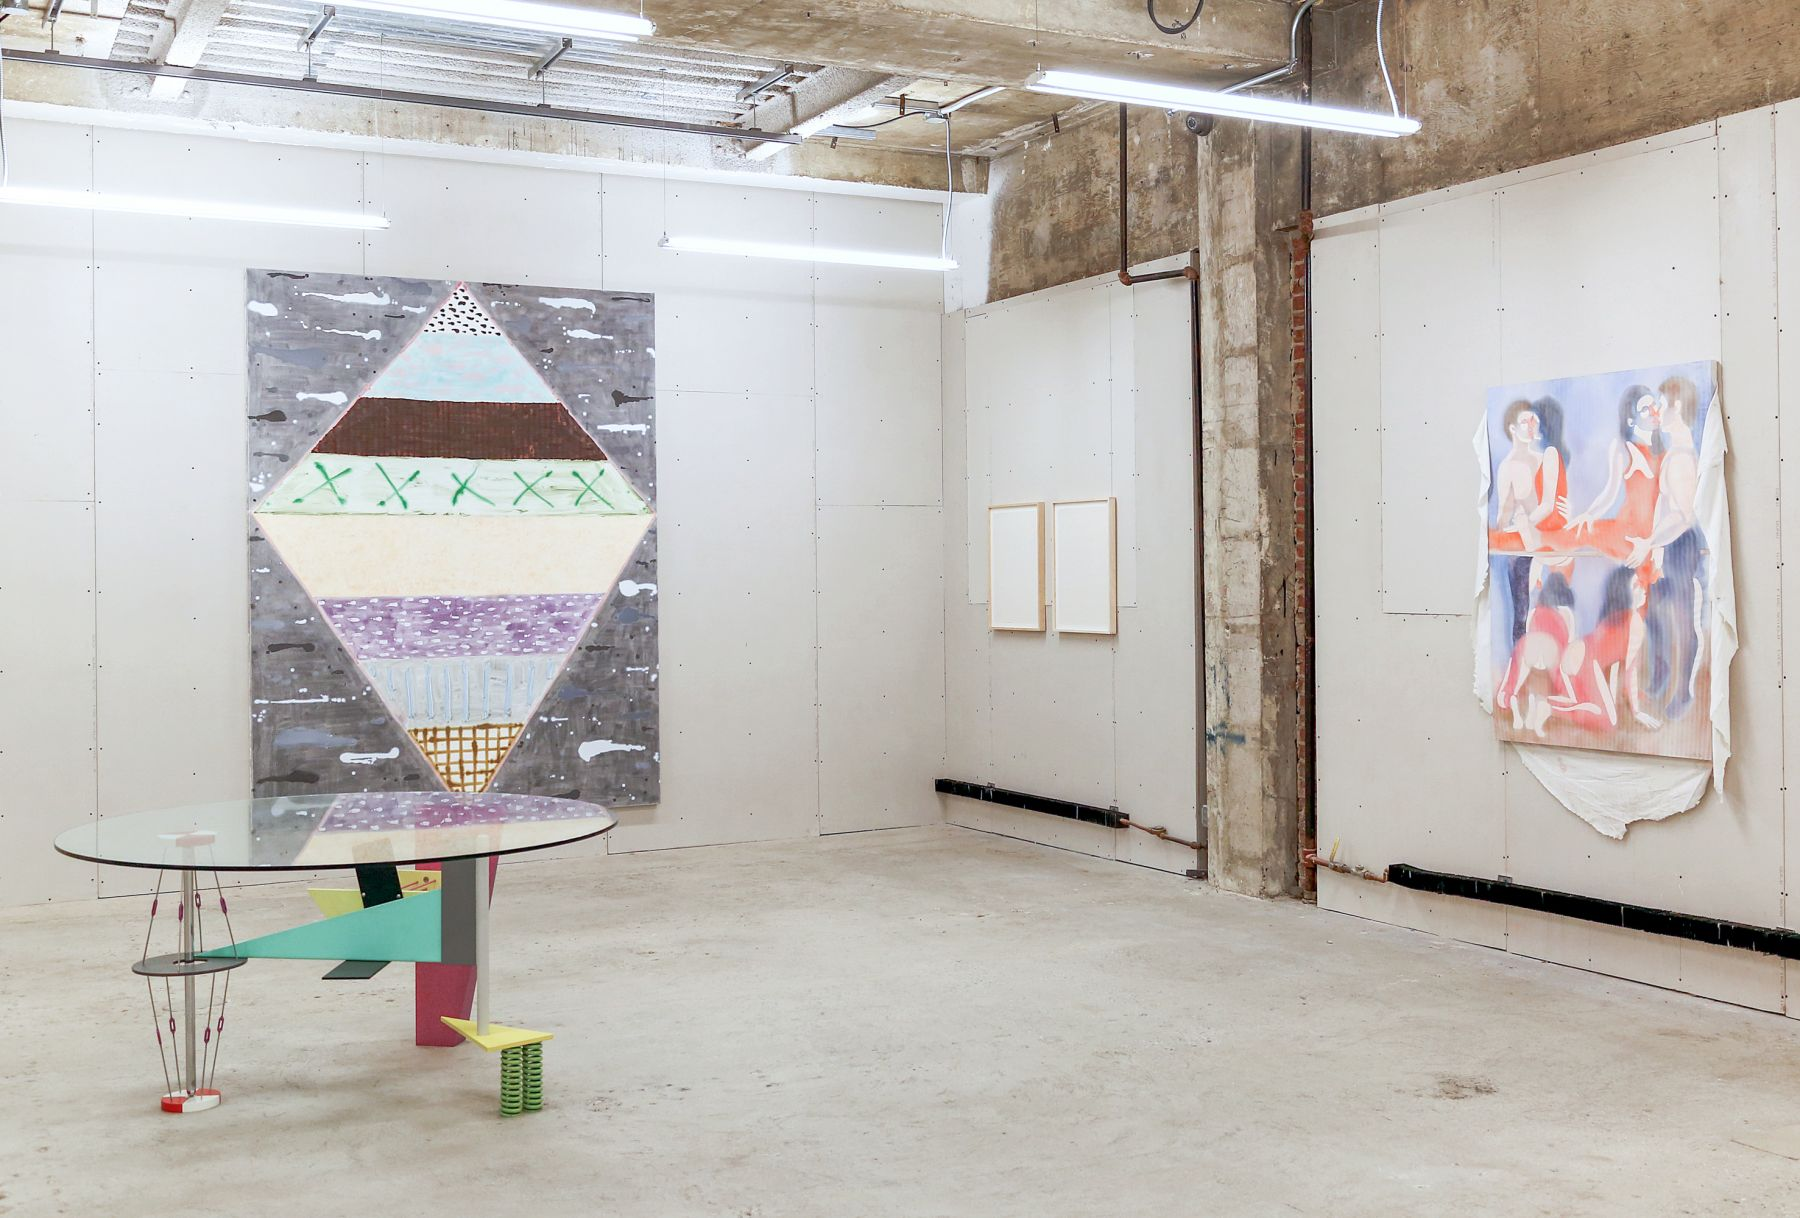 Installation view of Made in Space, curated by Peter Harkawik and Laura Owens, Venus Over Manhattan, New York, 2013